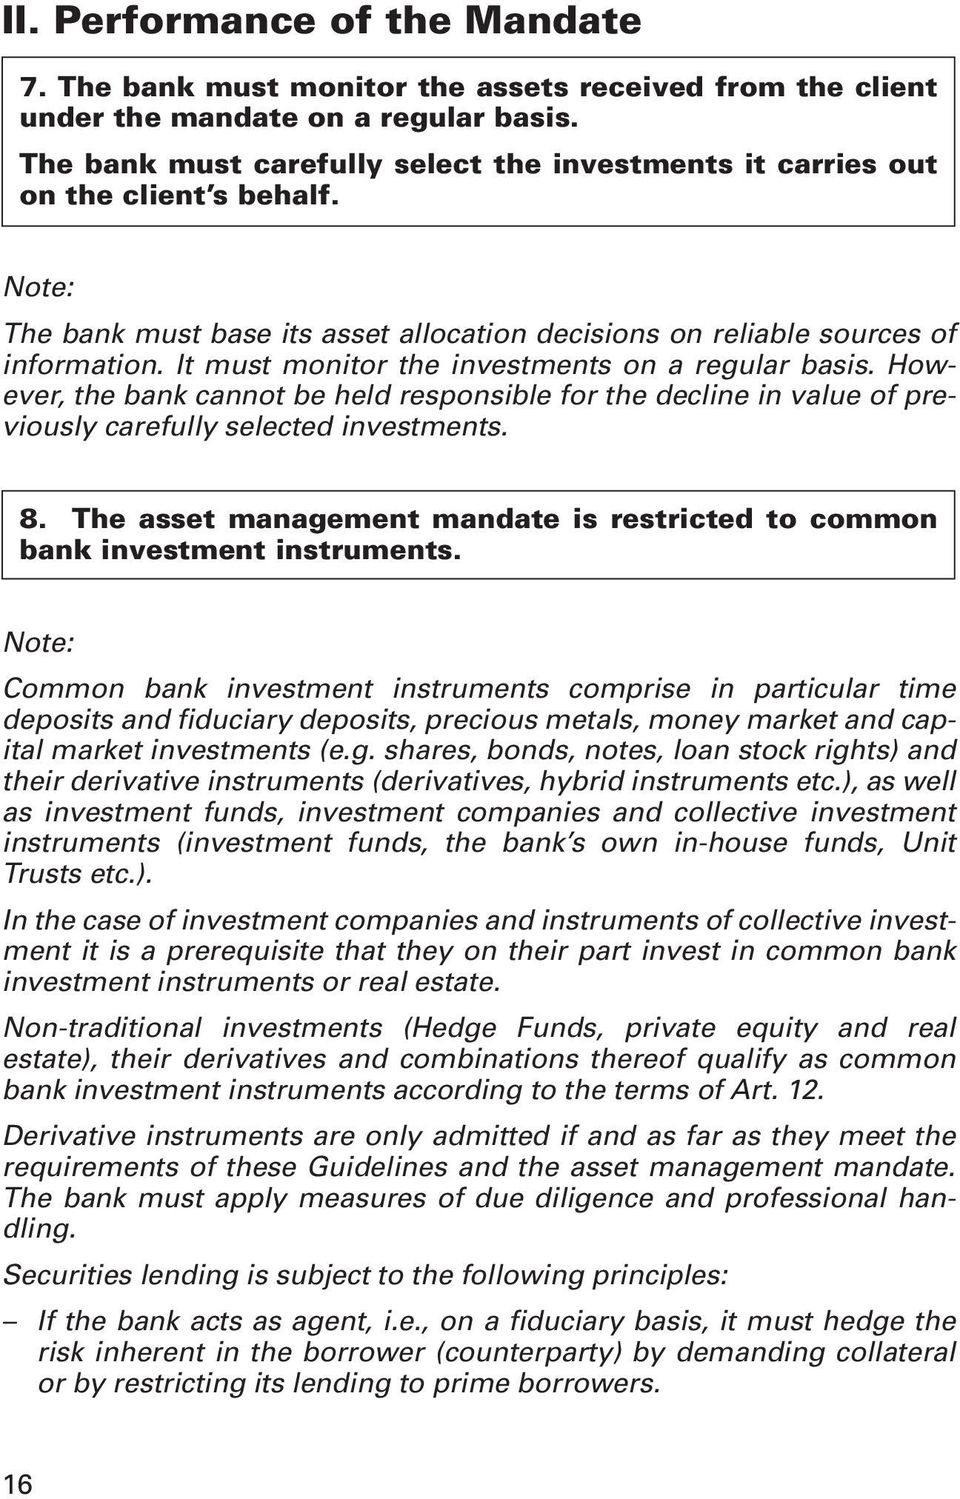 It must monitor the investments on a regular basis. However, the bank cannot be held responsible for the decline in value of previously carefully selected investments. 8.